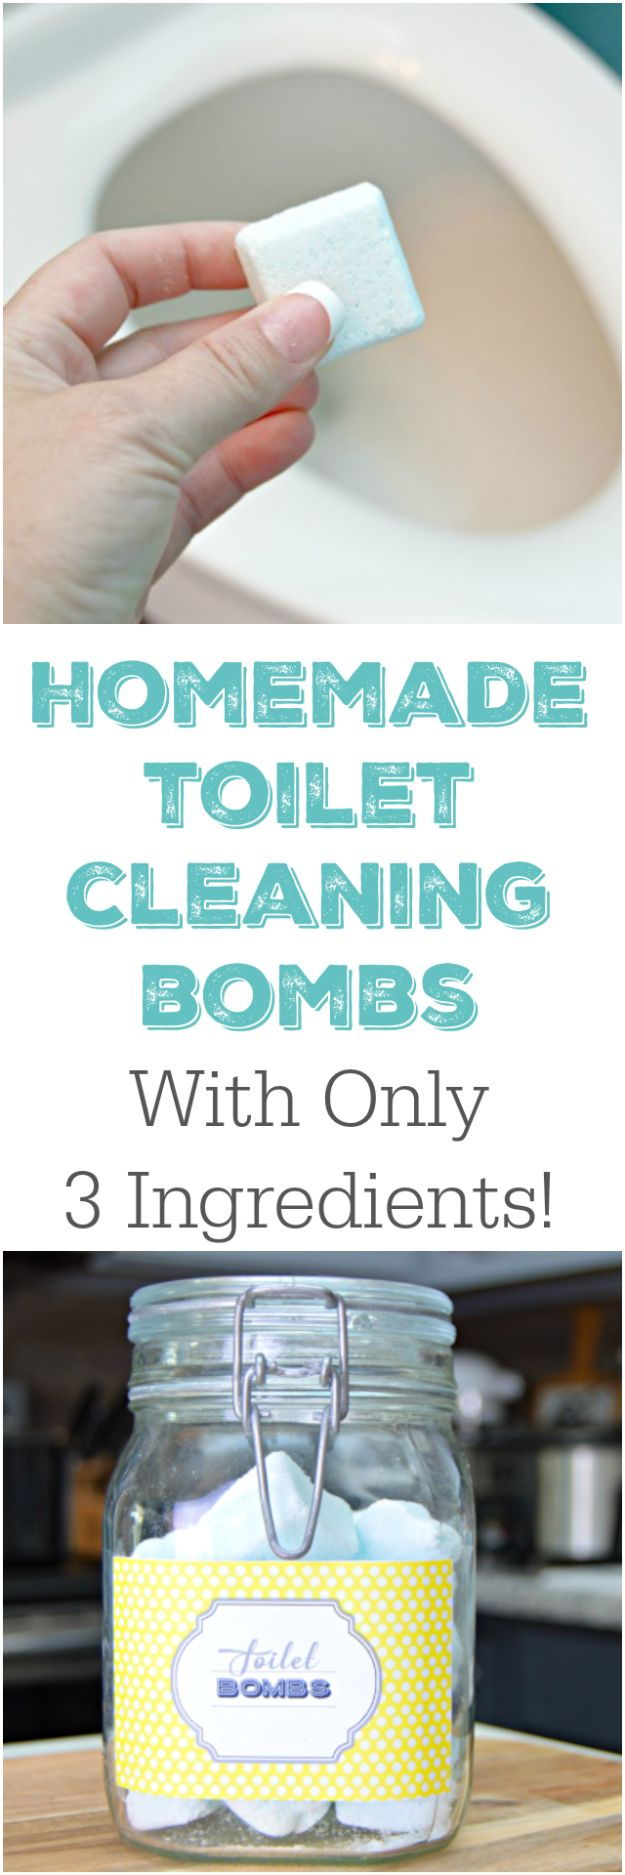 16 Supreme Homemade Cleaning Solutions That Work